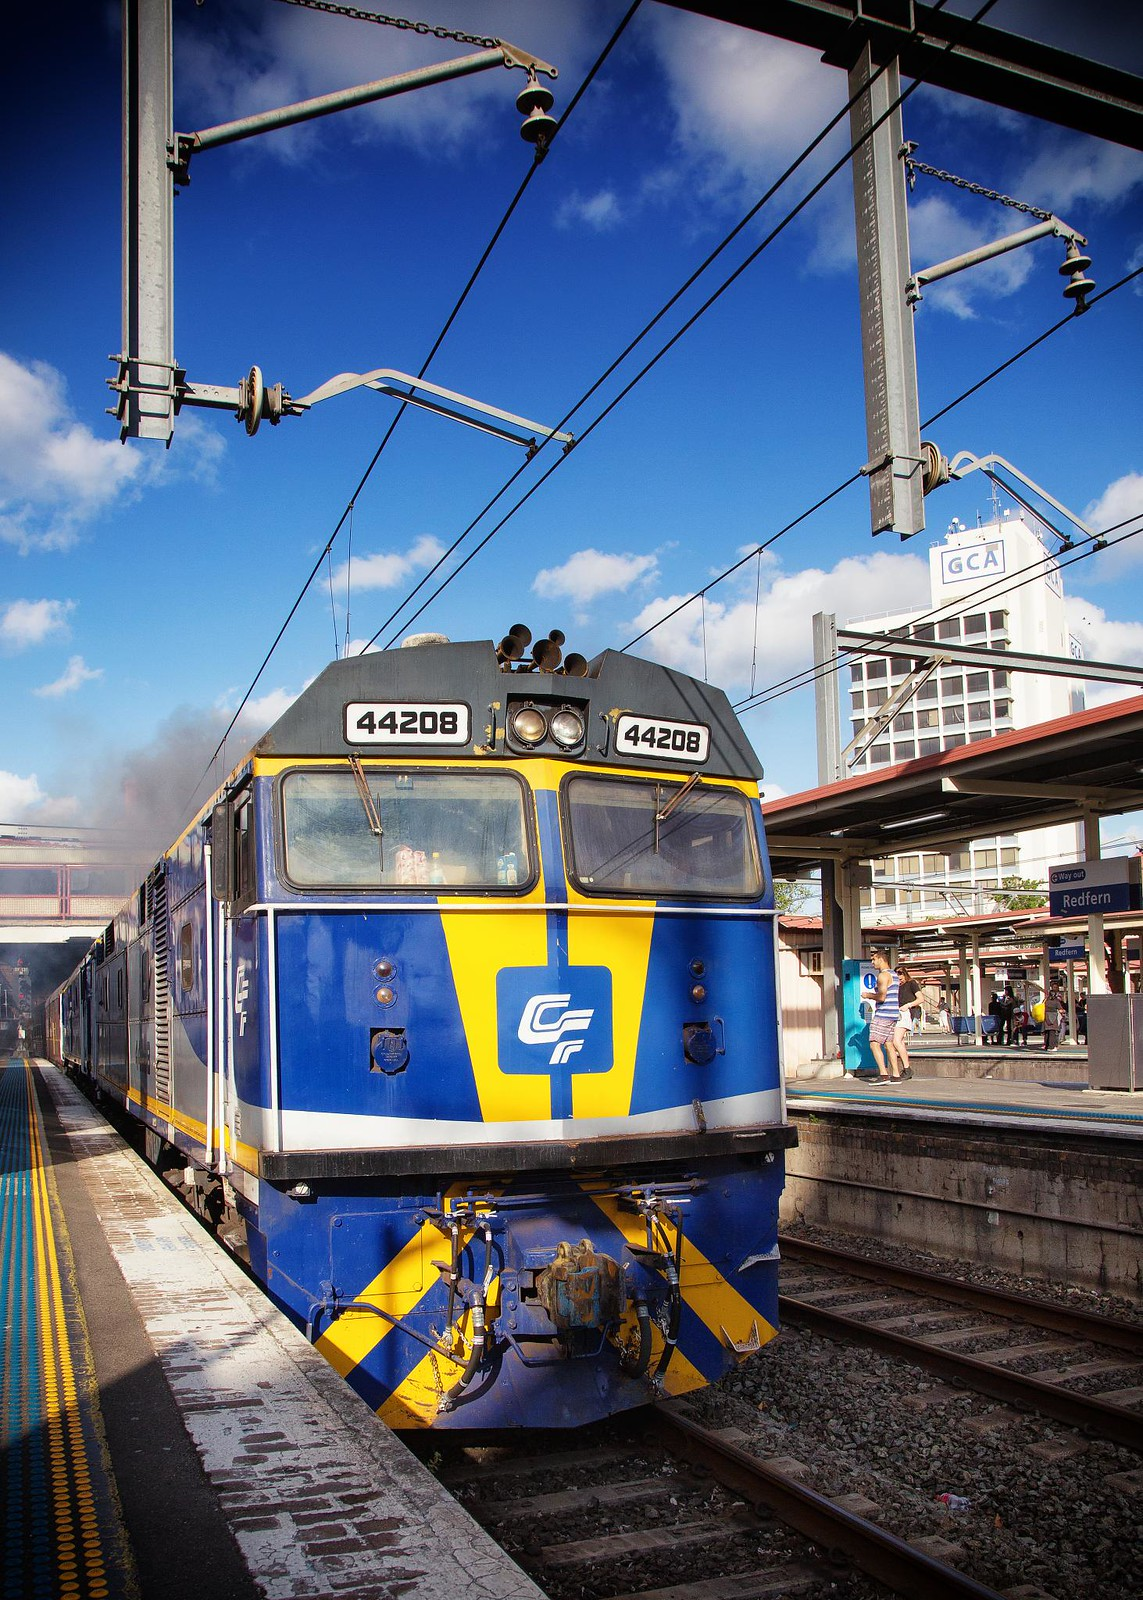 44208 Passing Redfern by Trent